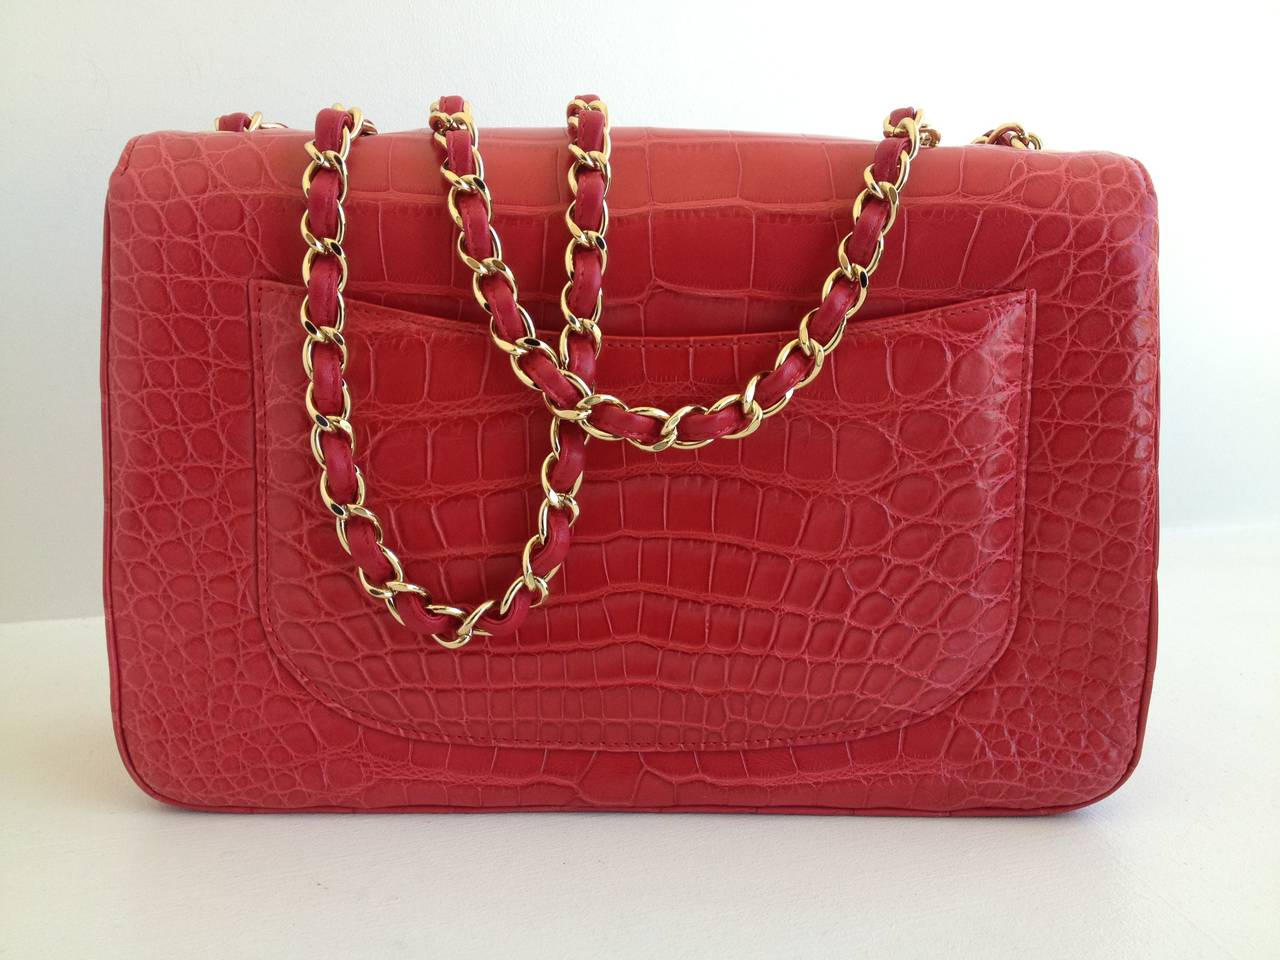 9b3bcfefb115 Chanel Red Alligator Jumbo Classic Single Flap Bag In Excellent Condition  For Sale In San Francisco